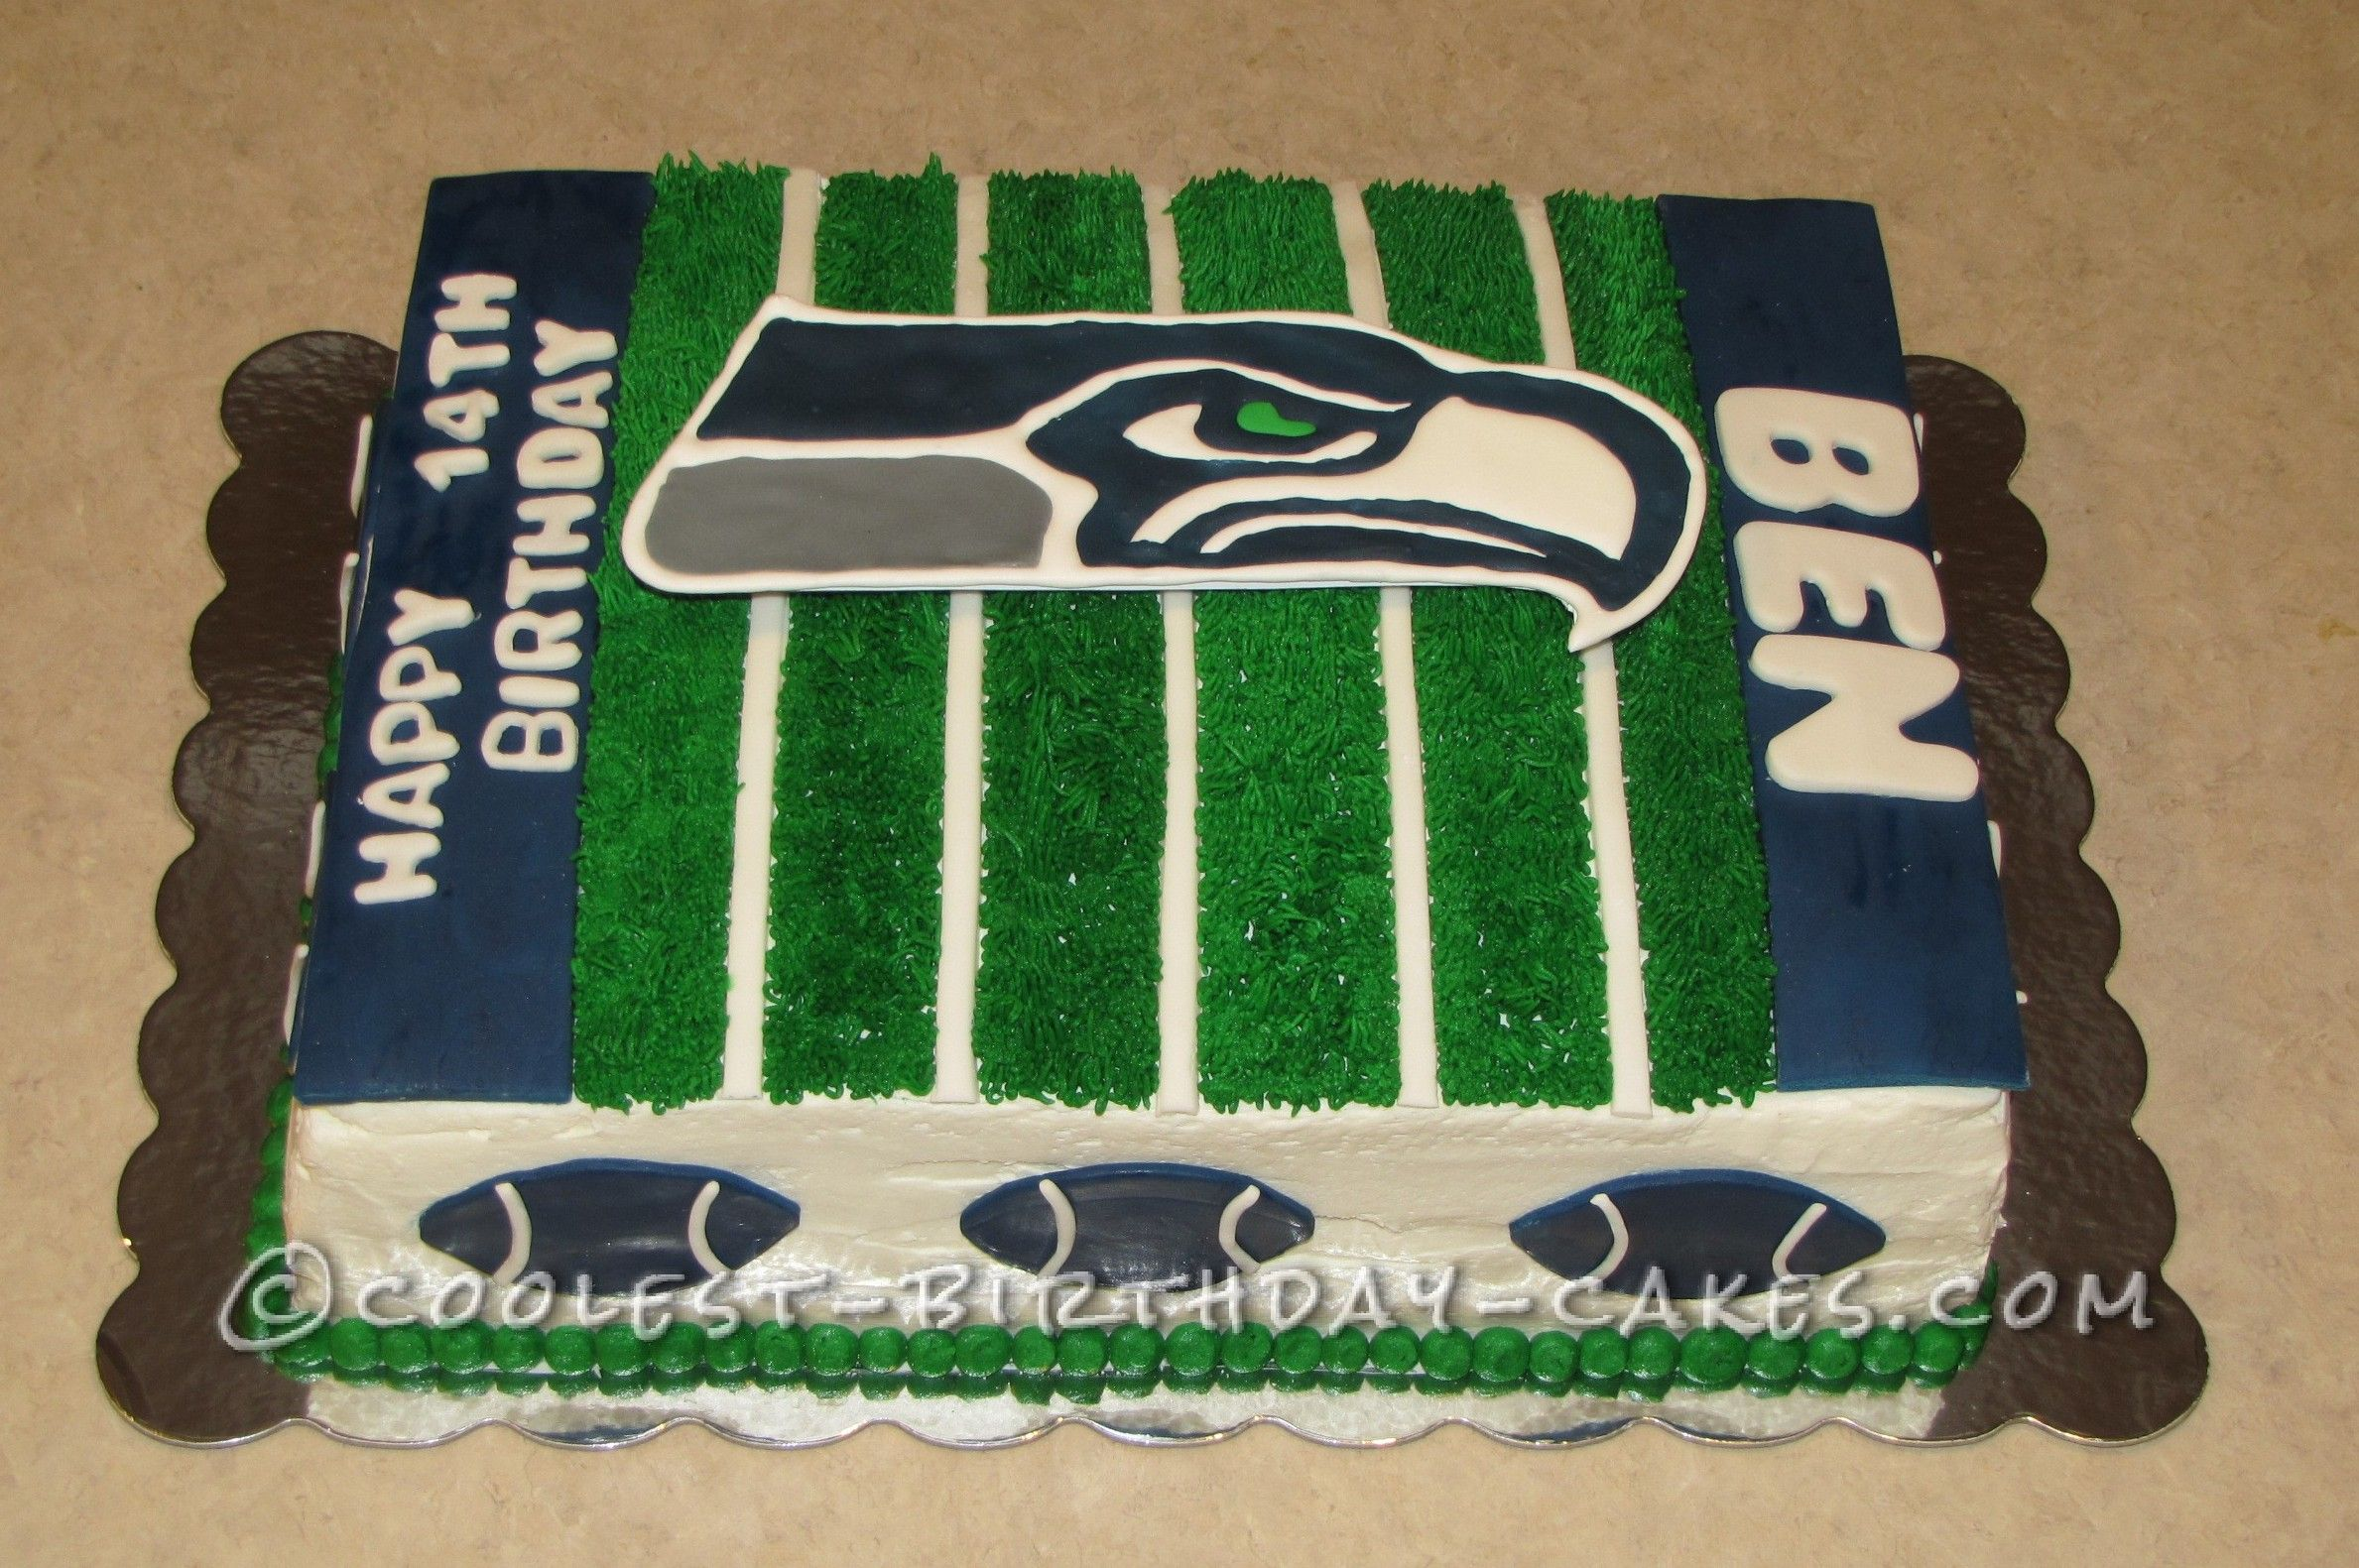 Seattle Seahawks Football Birthday Cake